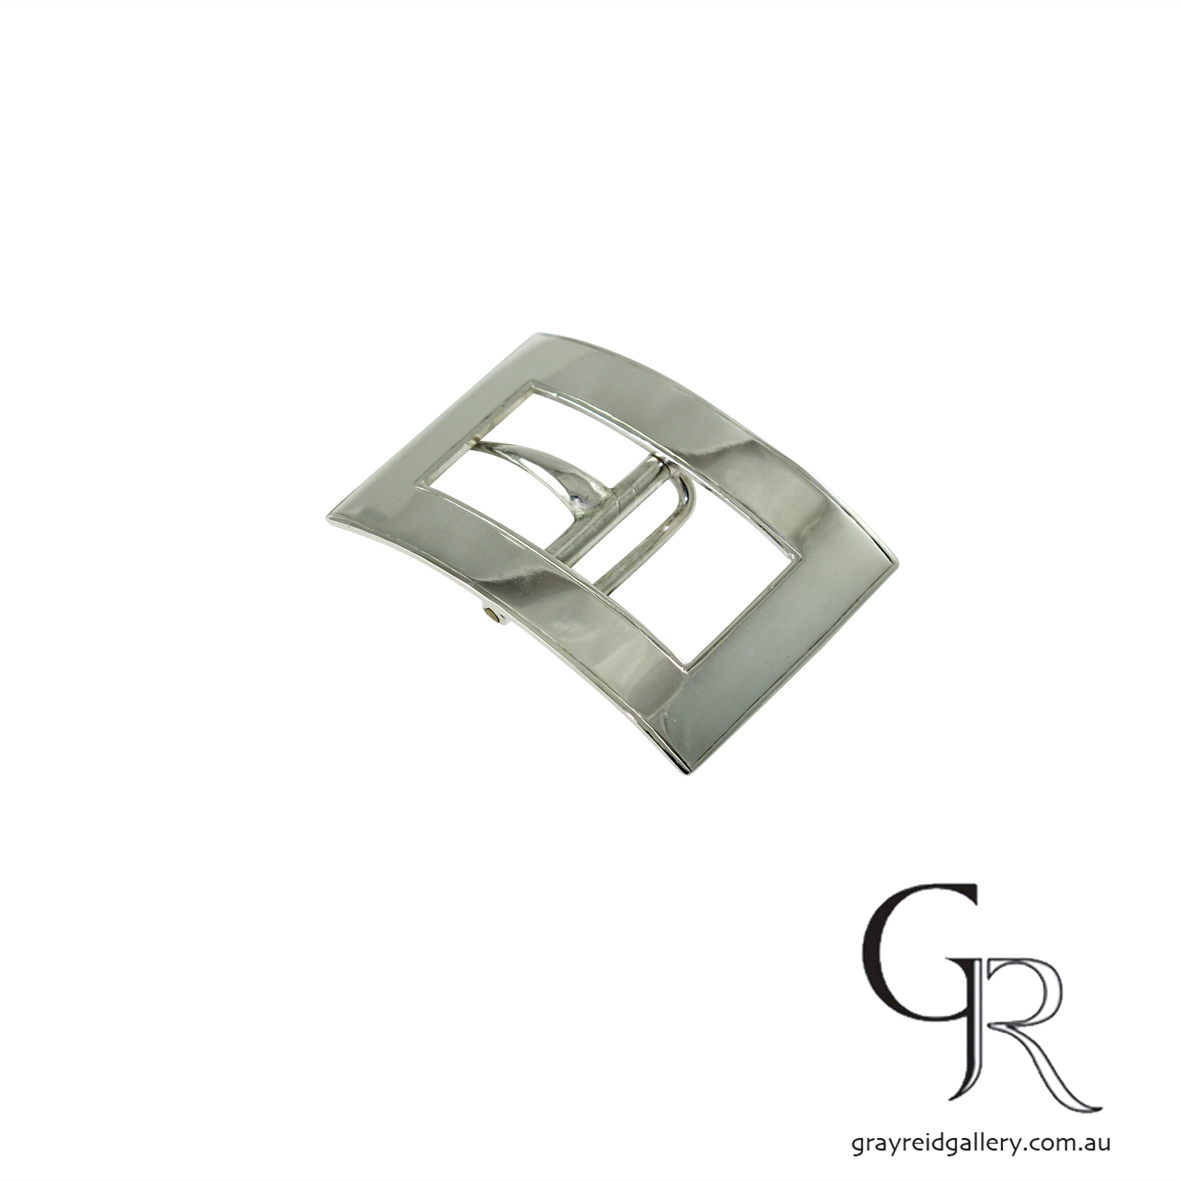 antiques and collectables melbourne sterling silver belt buckle Gray Reid Gallery 8.jpg